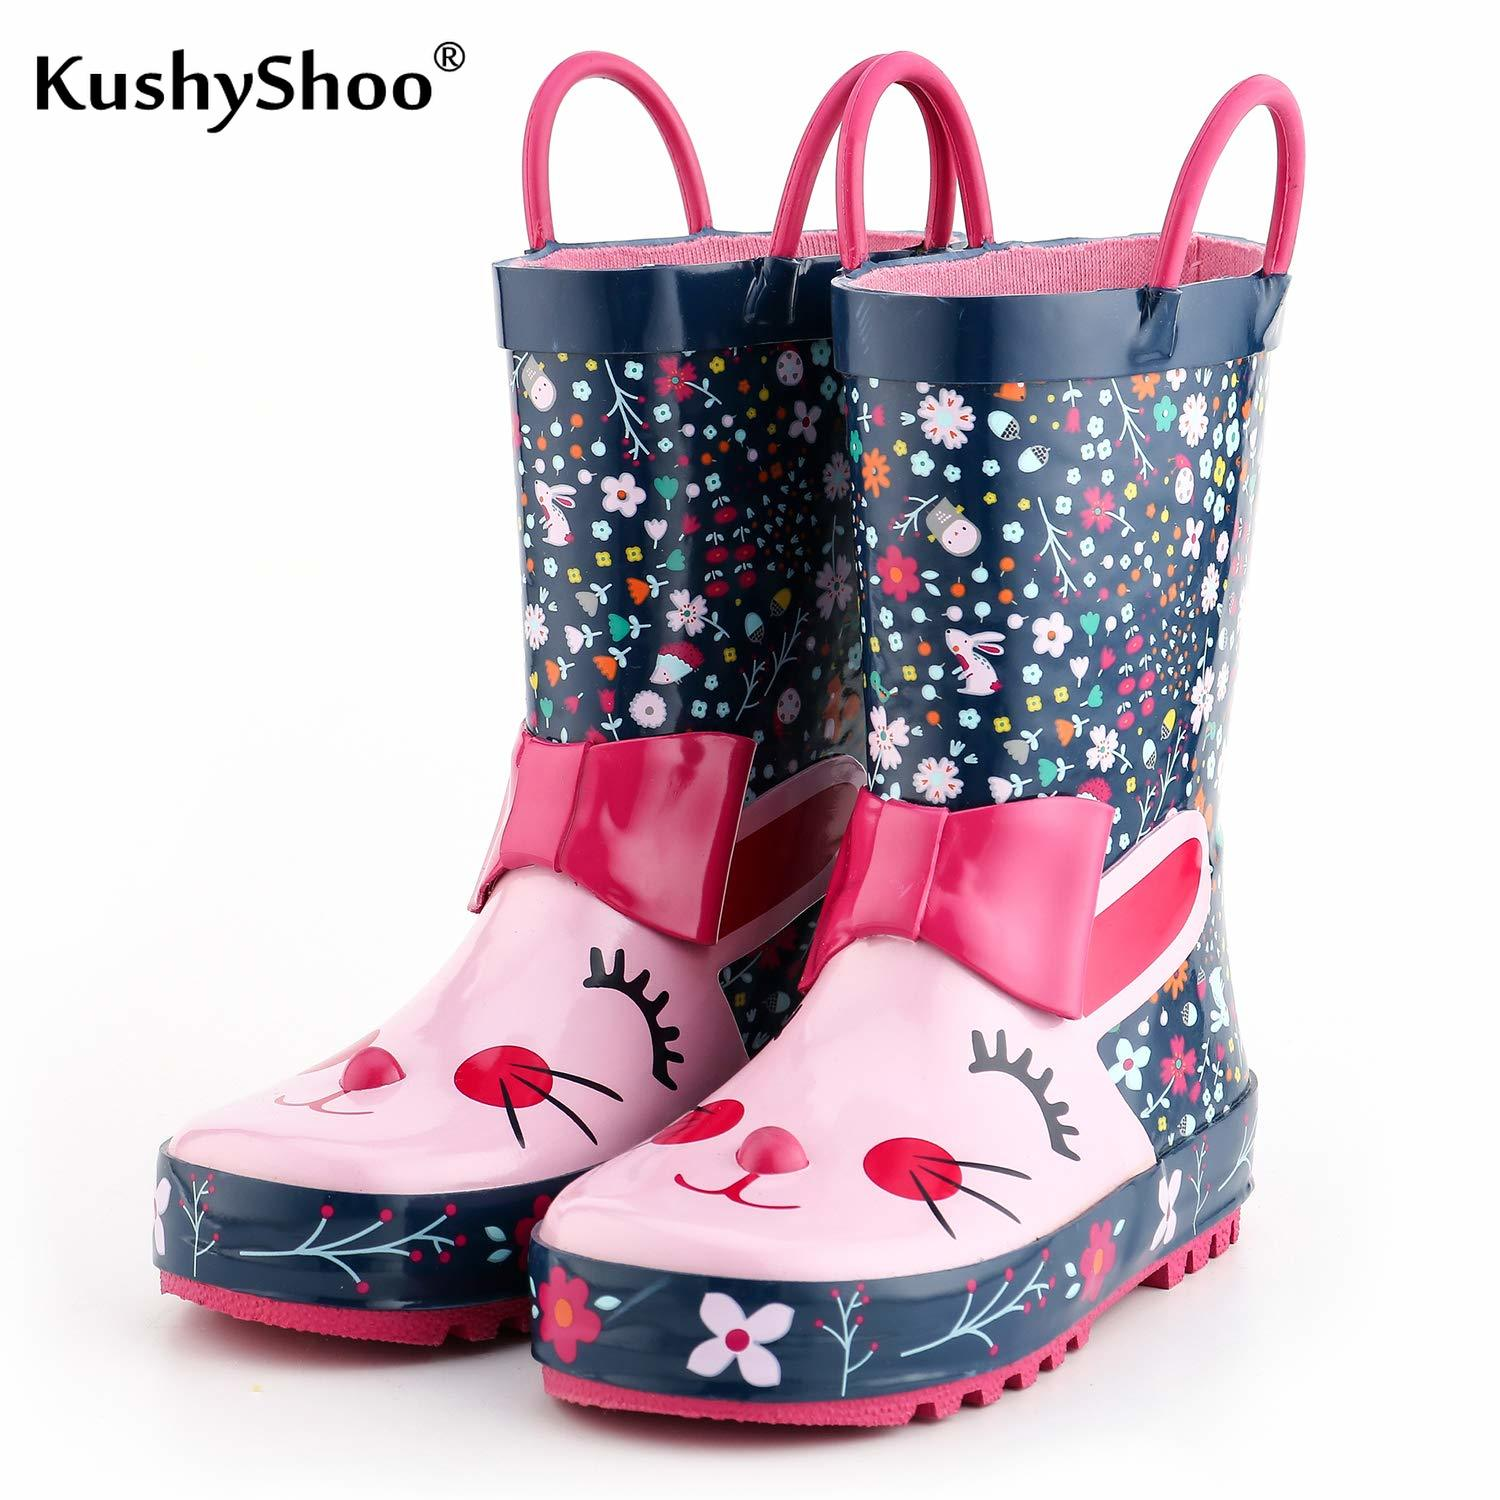 KushyShoo Kids Rain Boots Children's Rubber Boots With 3D Rabbit Patterns Kids Boots Girls Toddler Water Shoes Rainboots